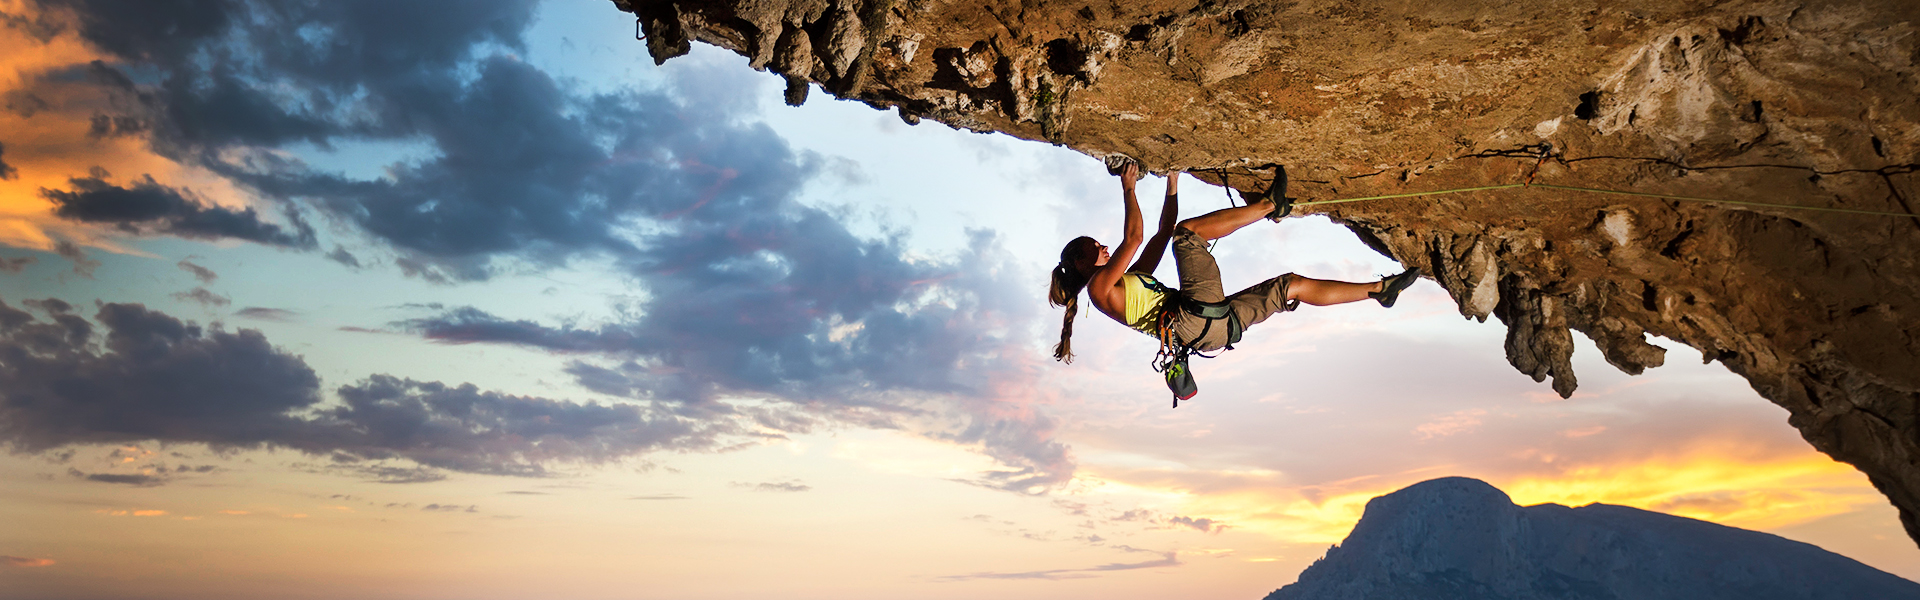 woman mountain climber.jpg (1)